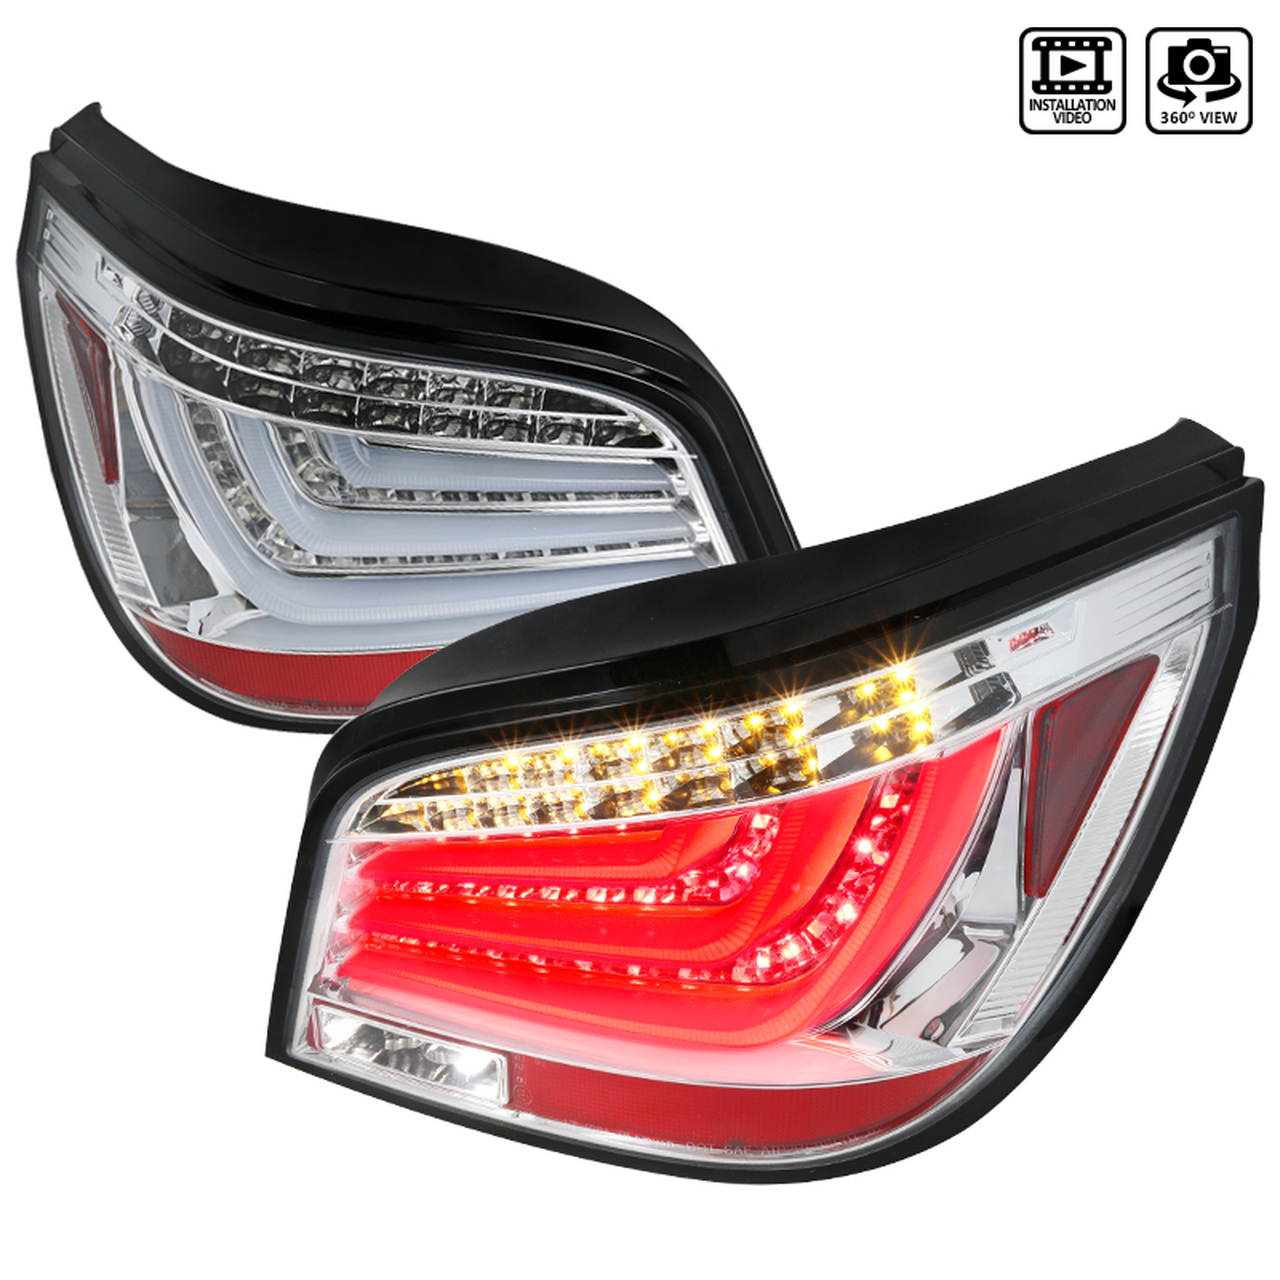 Spec-D Tuning Chrome LED Tail Lights - Spec-D Tuning LT-E6004CLED-TM